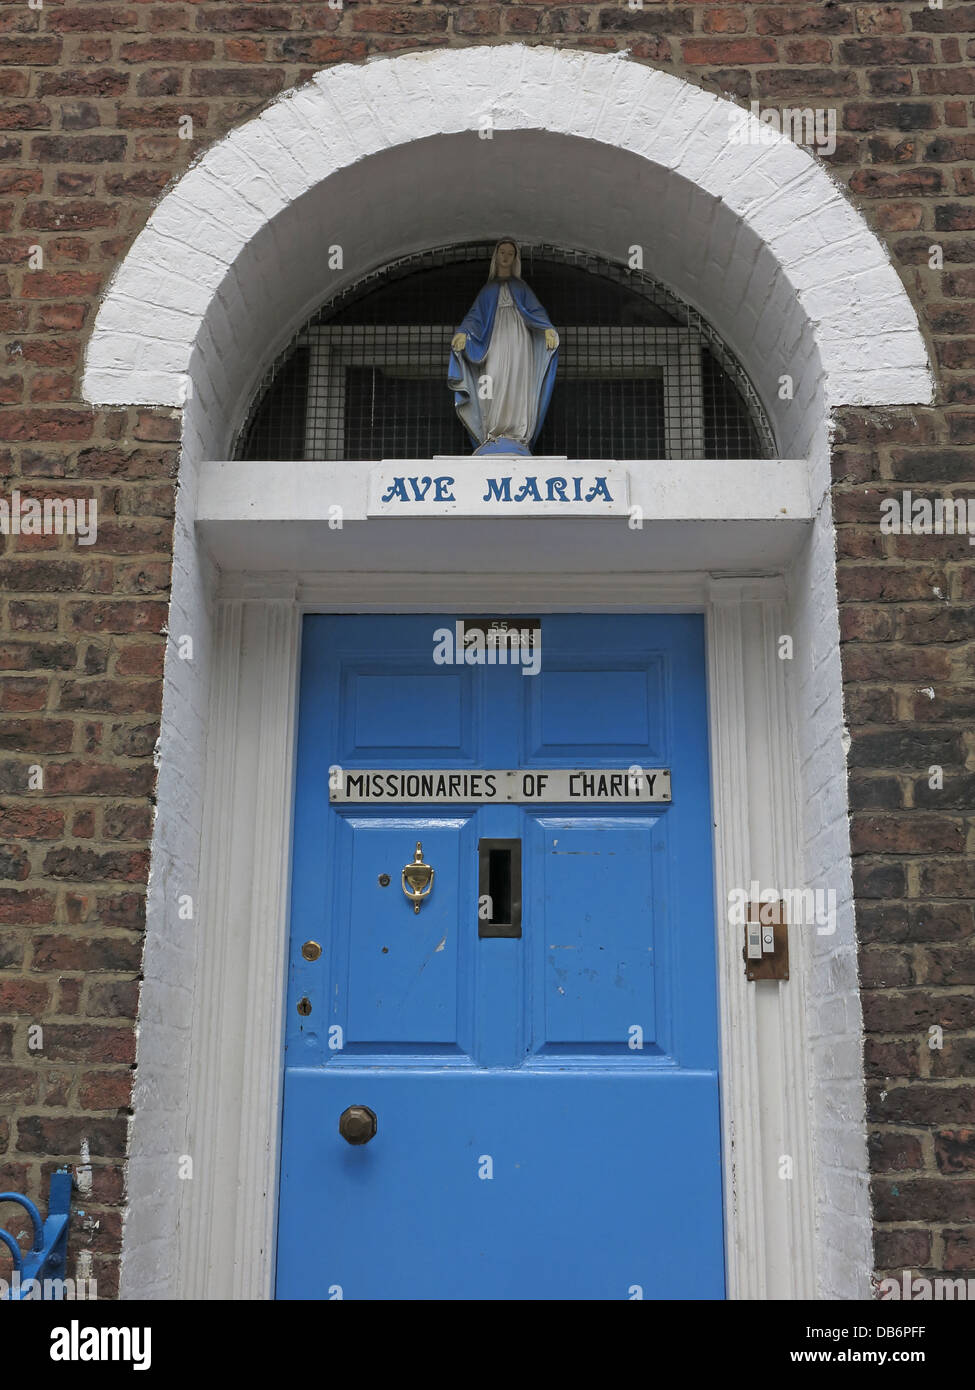 Ave Maria Missionaries of Charity Office Liverpool - Stock Image